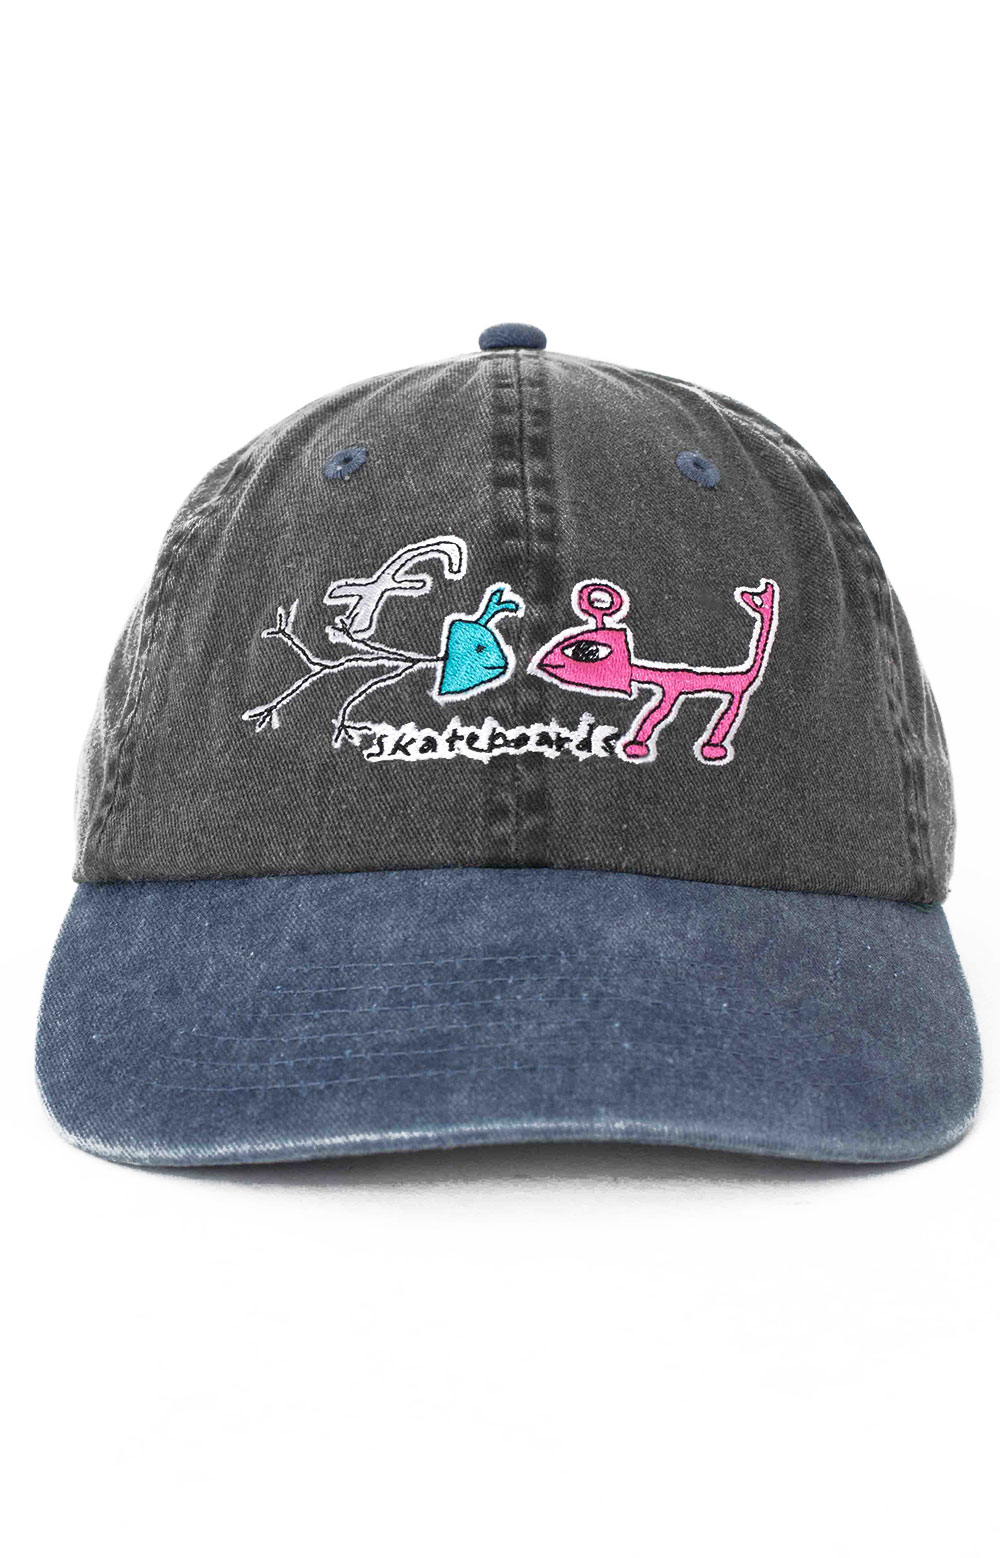 Frog Exists! Dad Hat - Black/Turquoise  2